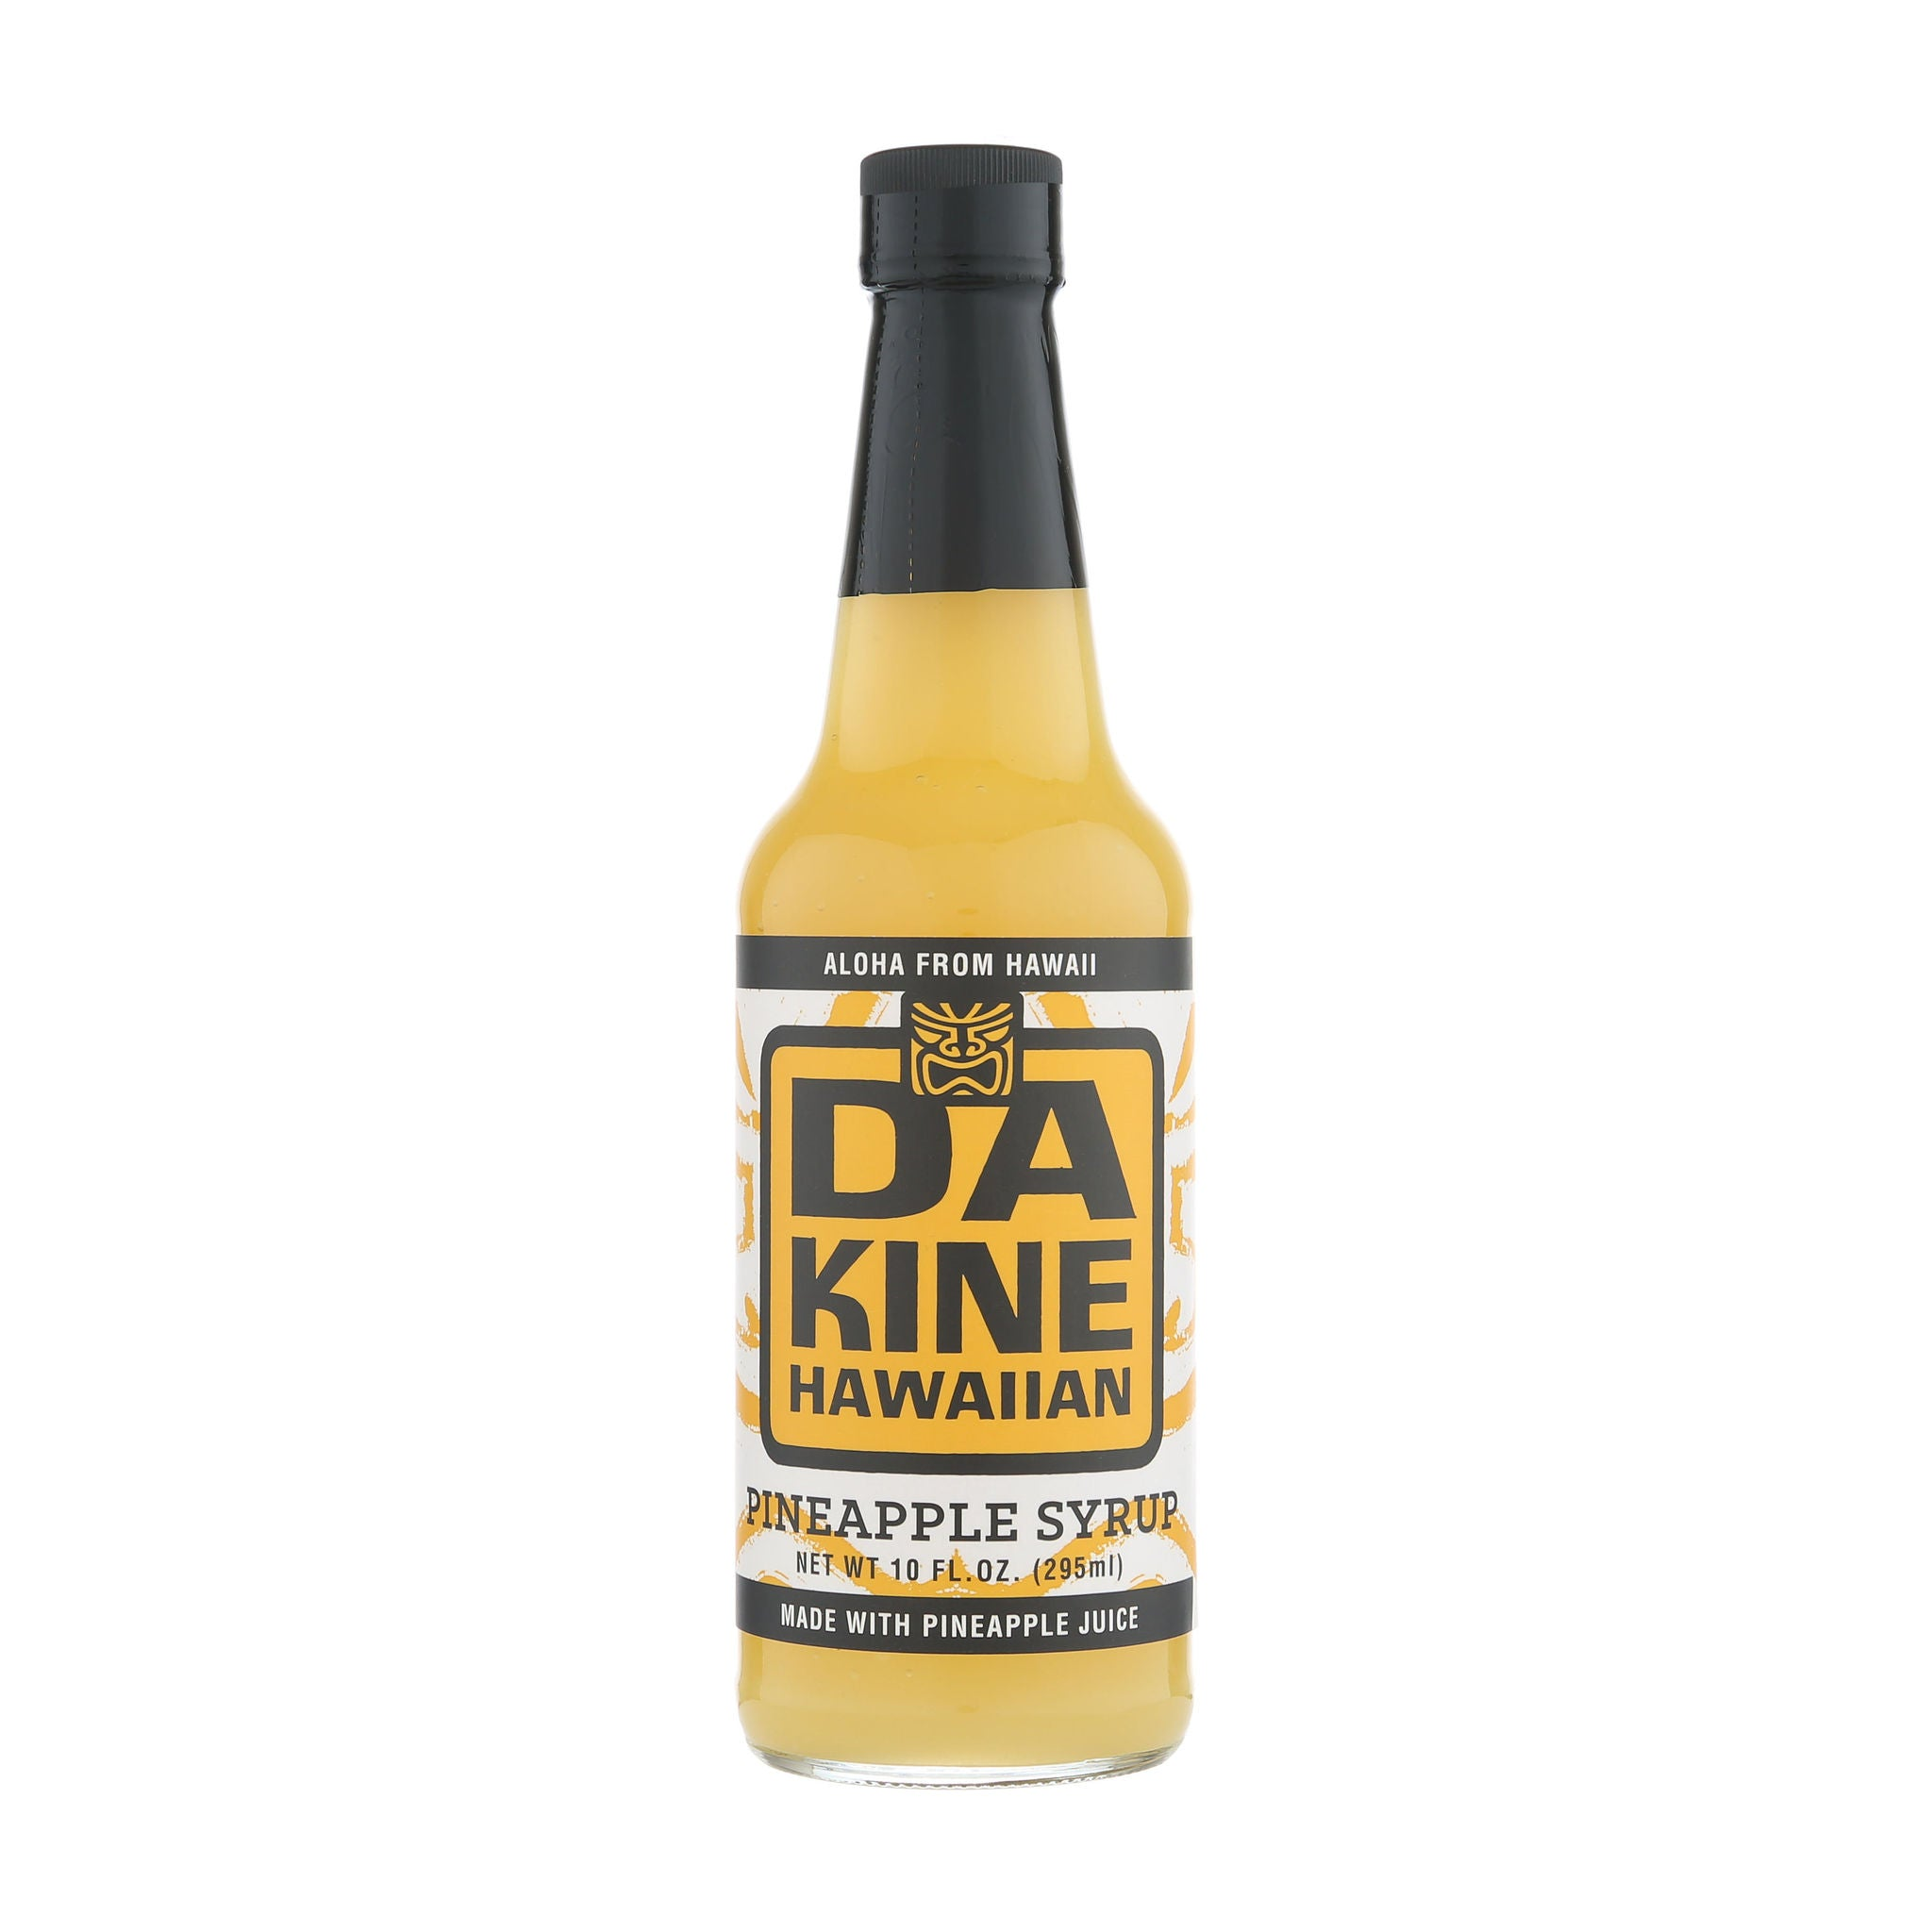 Da Kine Hawaiian Pineapple Syrup